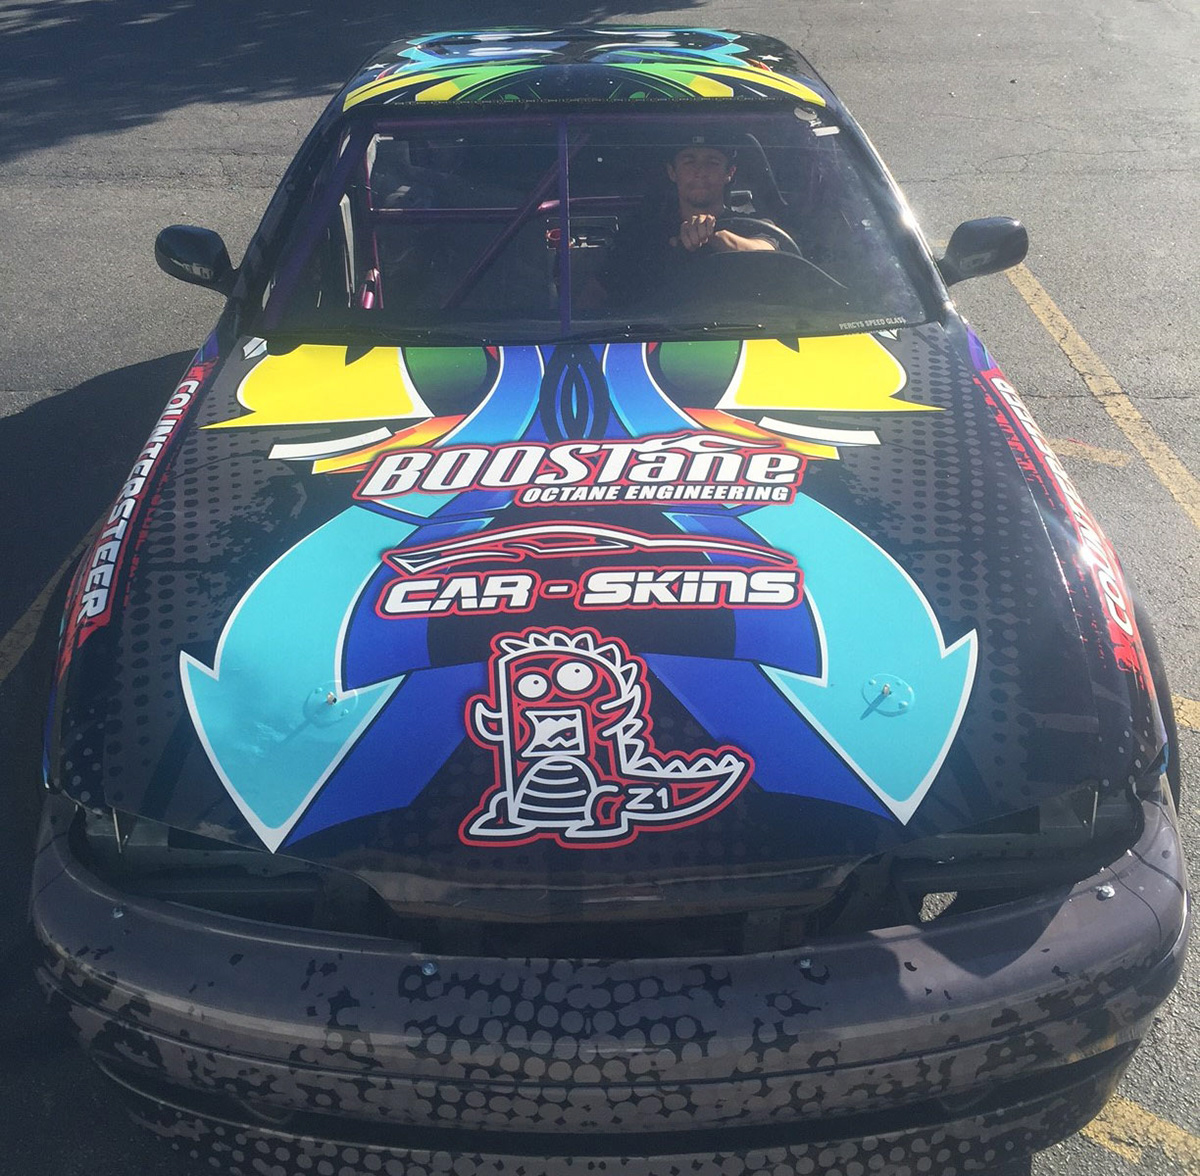 Wraptor Graphix Graphic Design For The Wrap Industry 240sx